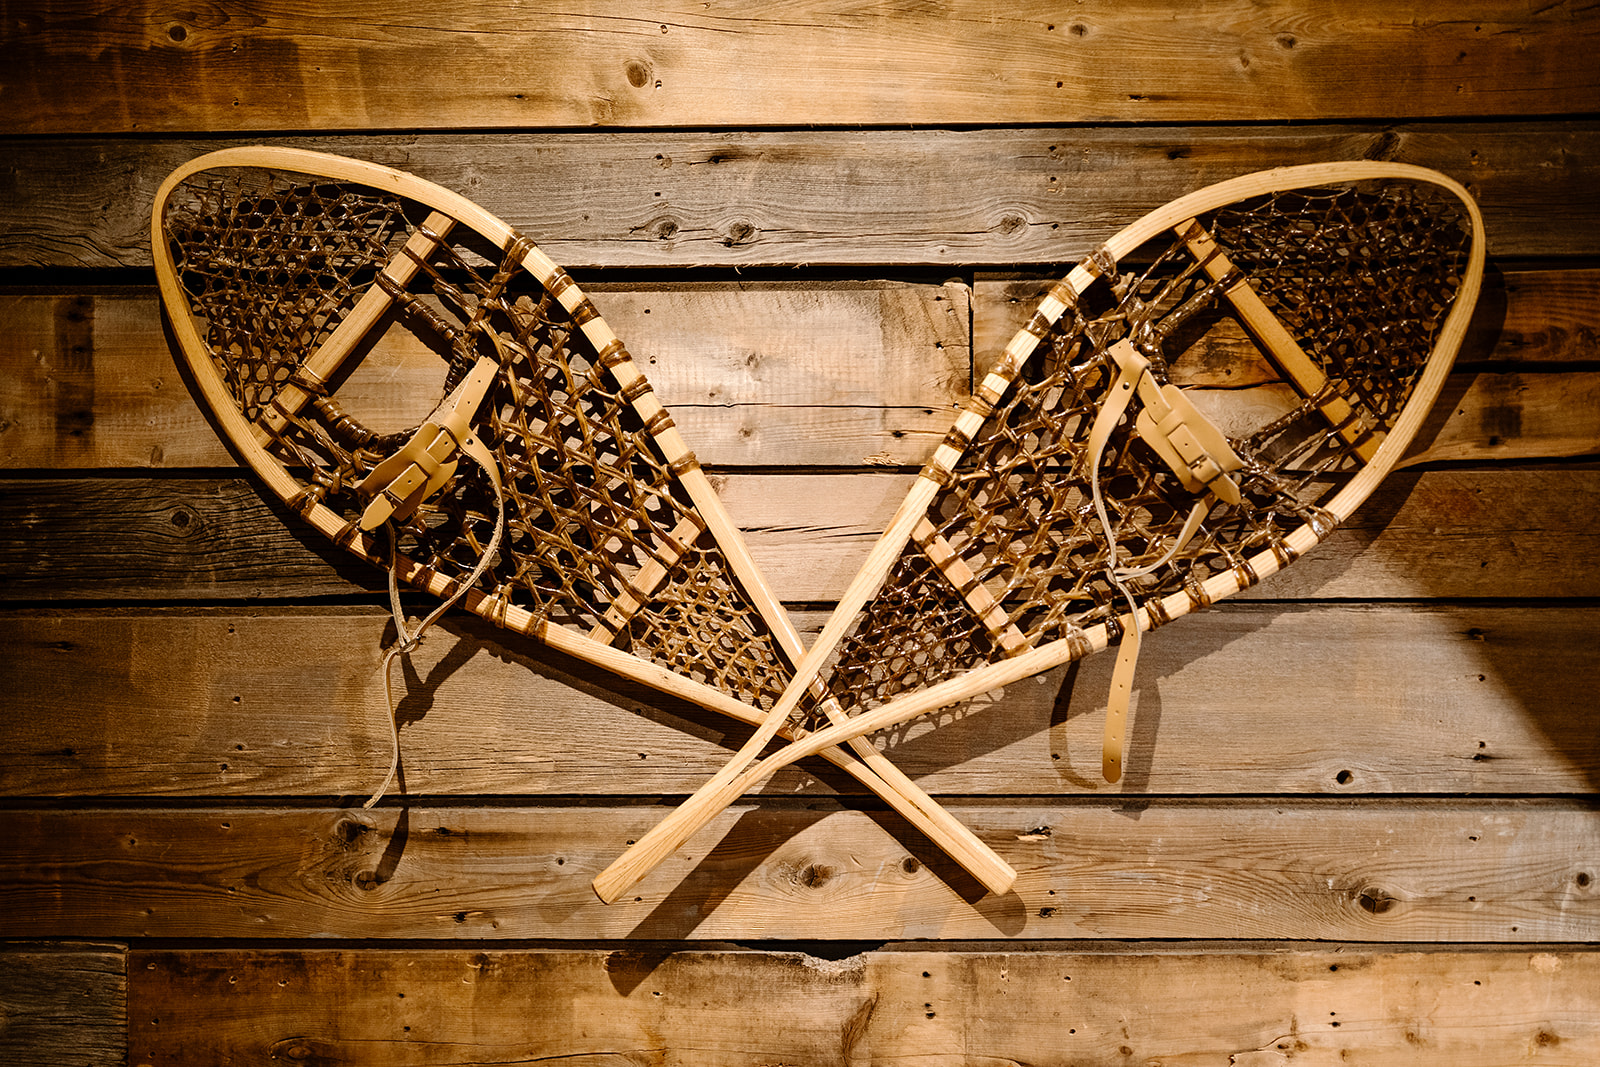 snow shoes at a event venues in Canmore, Cornerstone Theatre